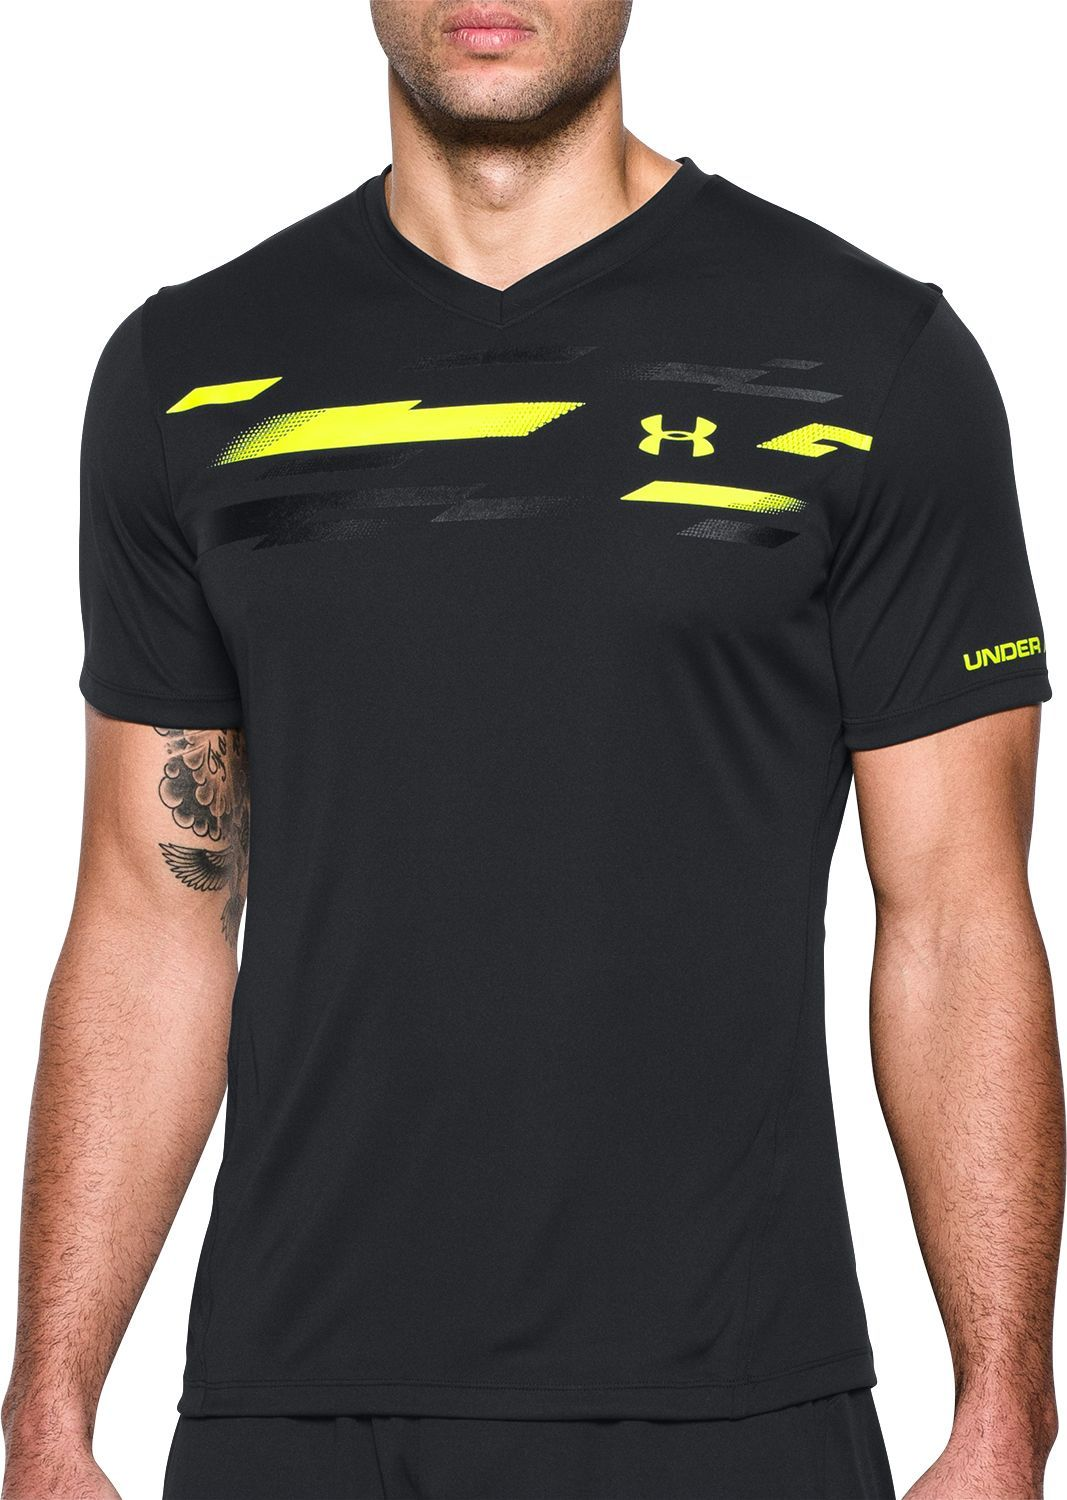 Under Armour Men s Challenger Graphic Soccer Training T-Shirt dc5b4c7e1a